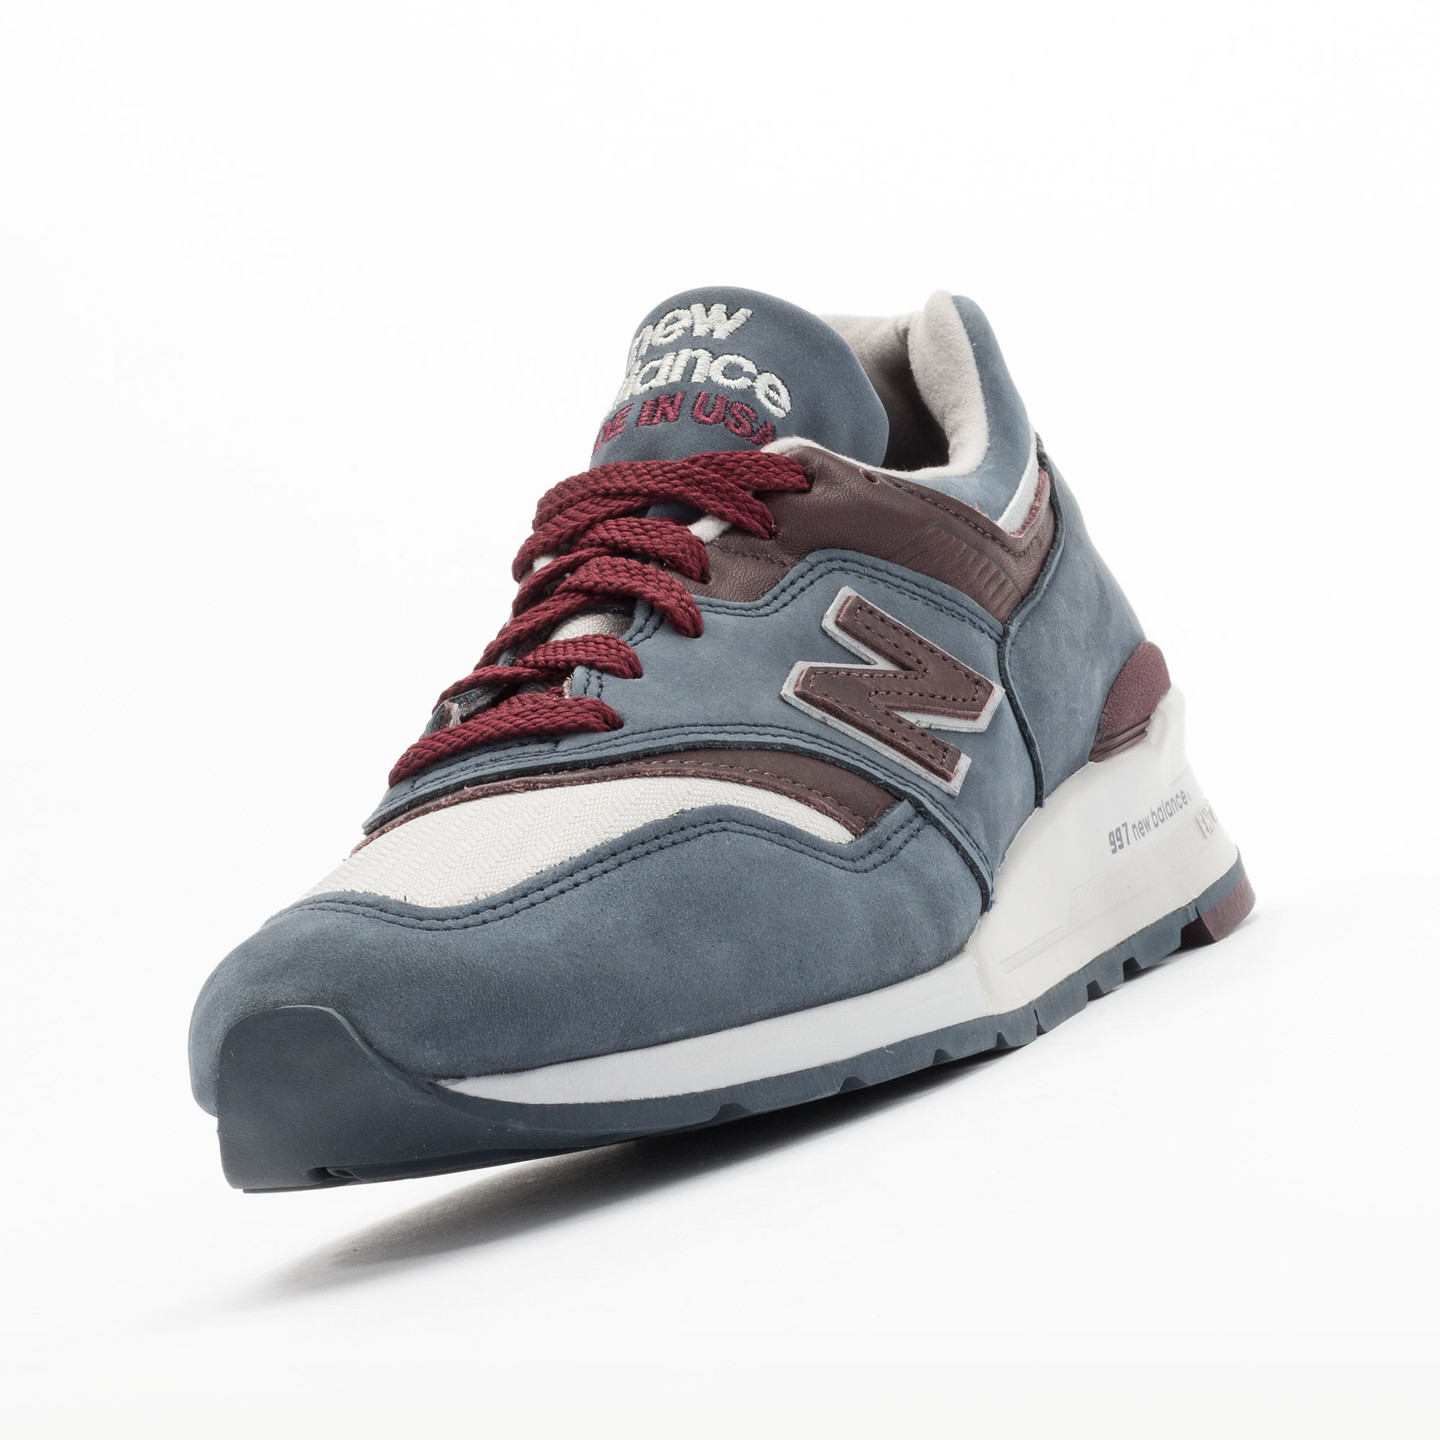 New Balance M997 DGM - Made in USA Grey Steel / Burgundy M997DGM-45